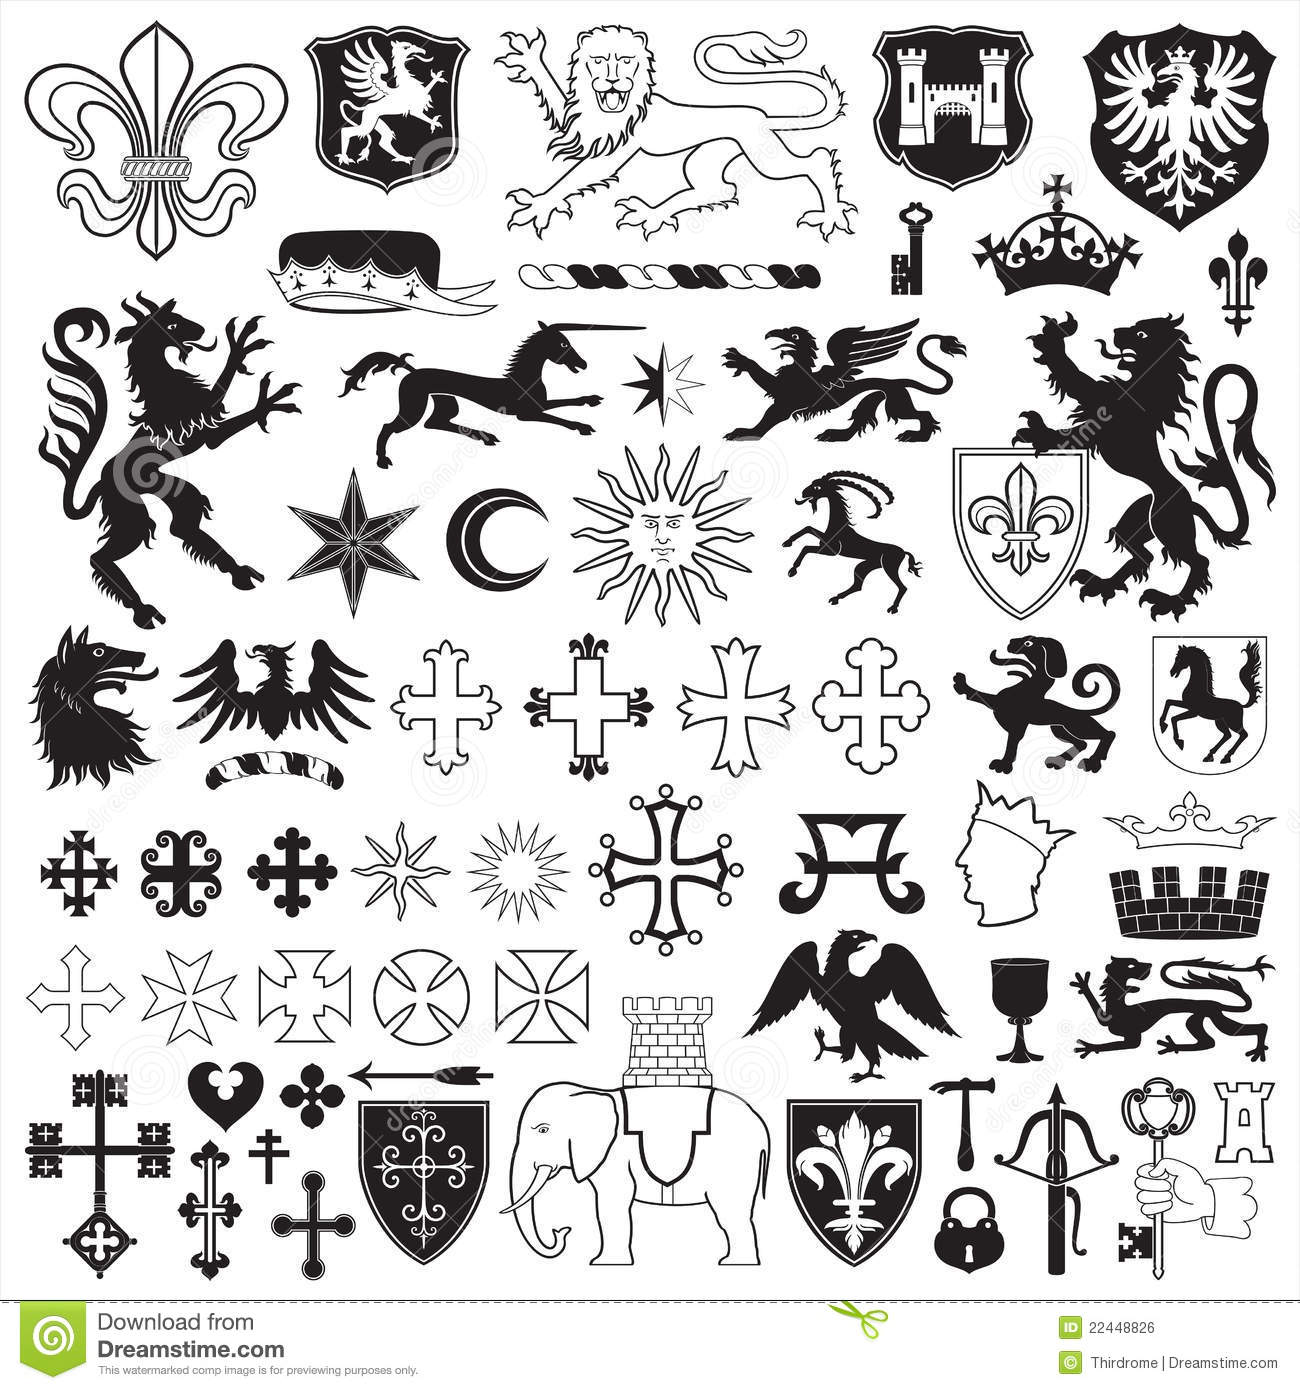 Heraldic Symbols And Crosses Royalty Free Stock Image - Image ...